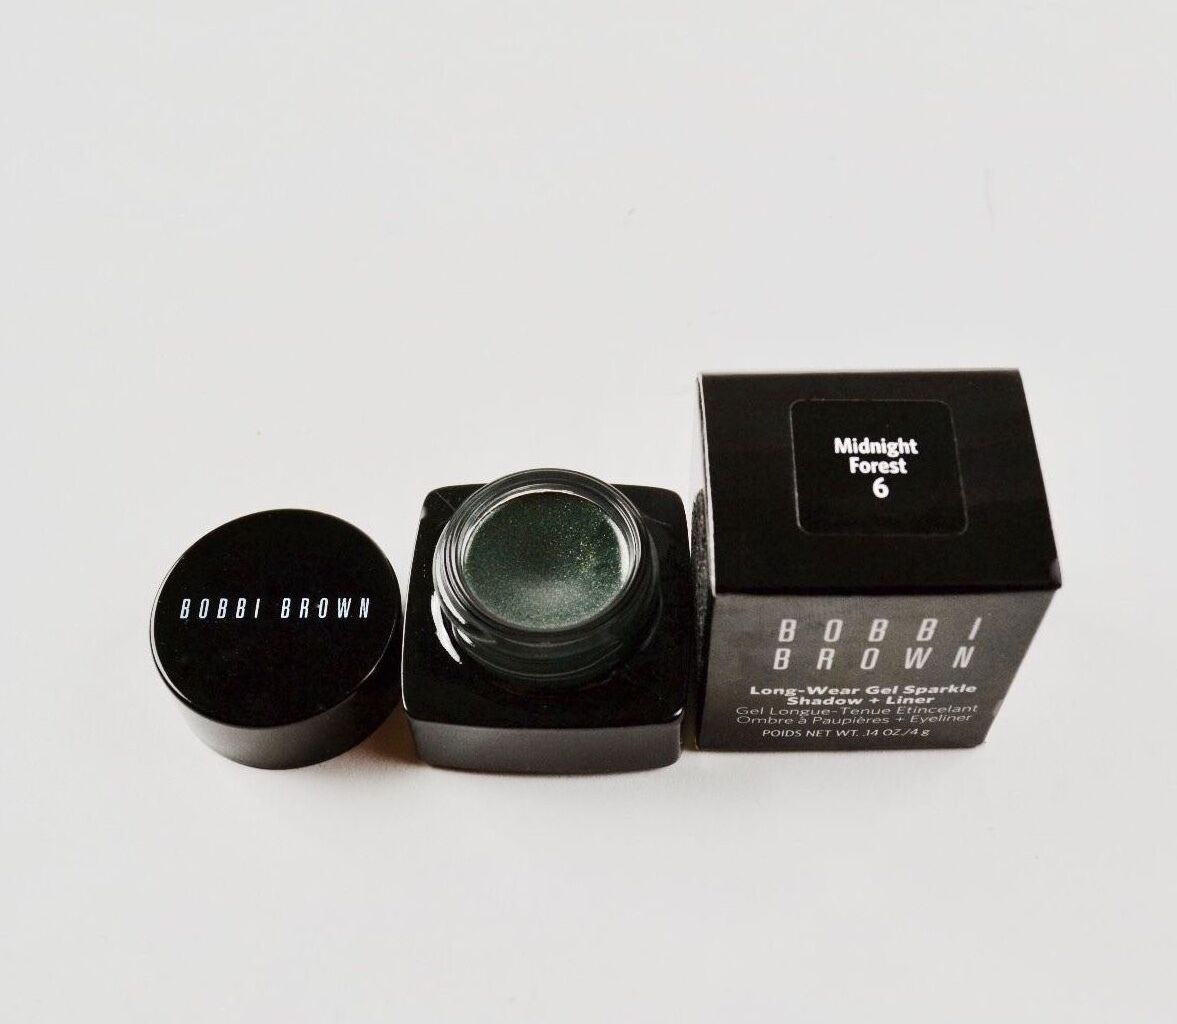 Bobbi Brown Long Wear Gel Sparkle Shadow + Liner MIDNIGHT